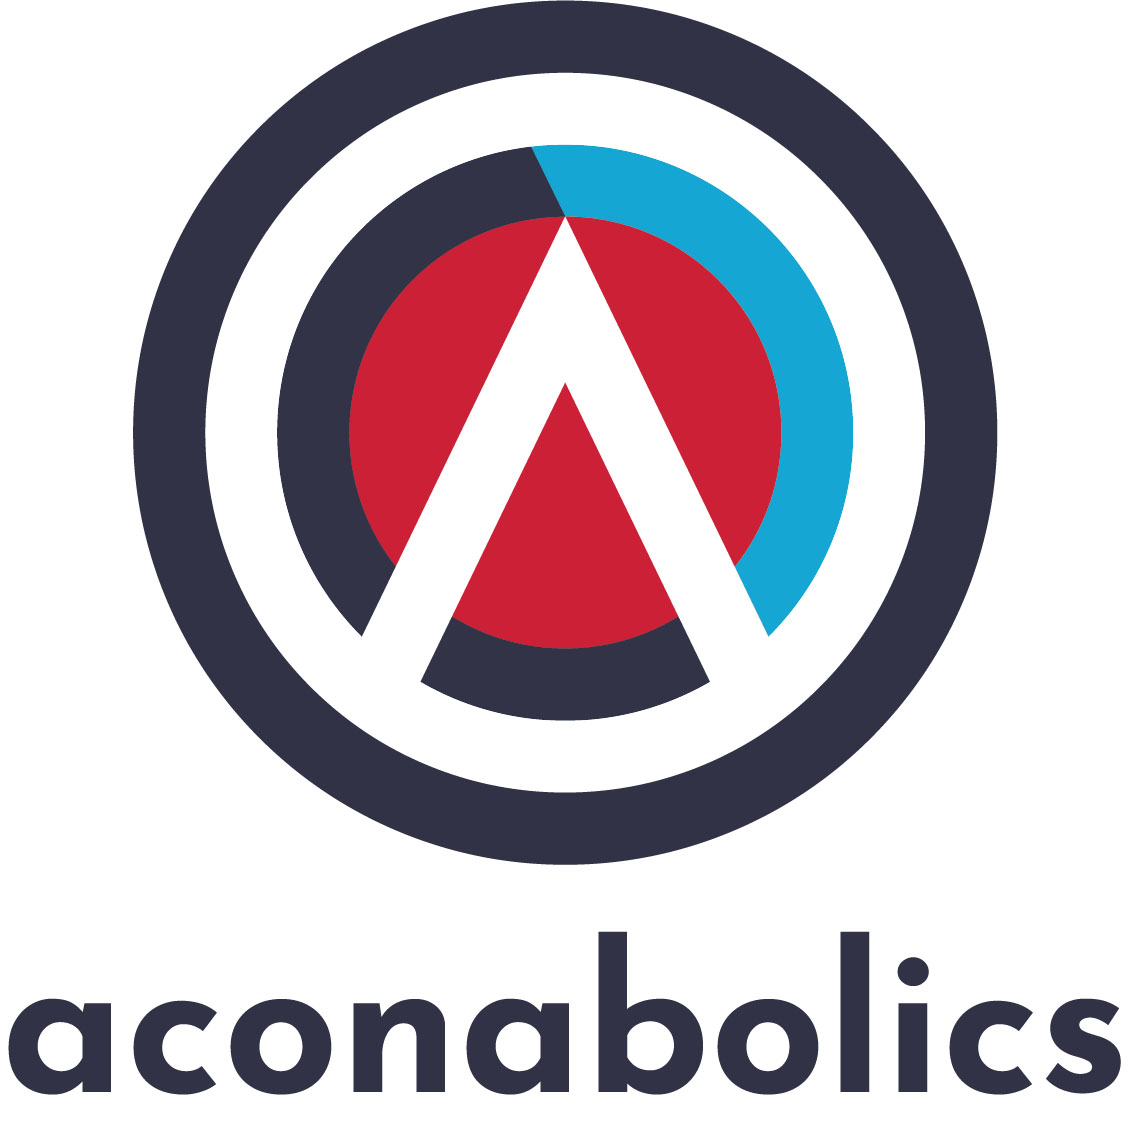 The Aconabolics logo